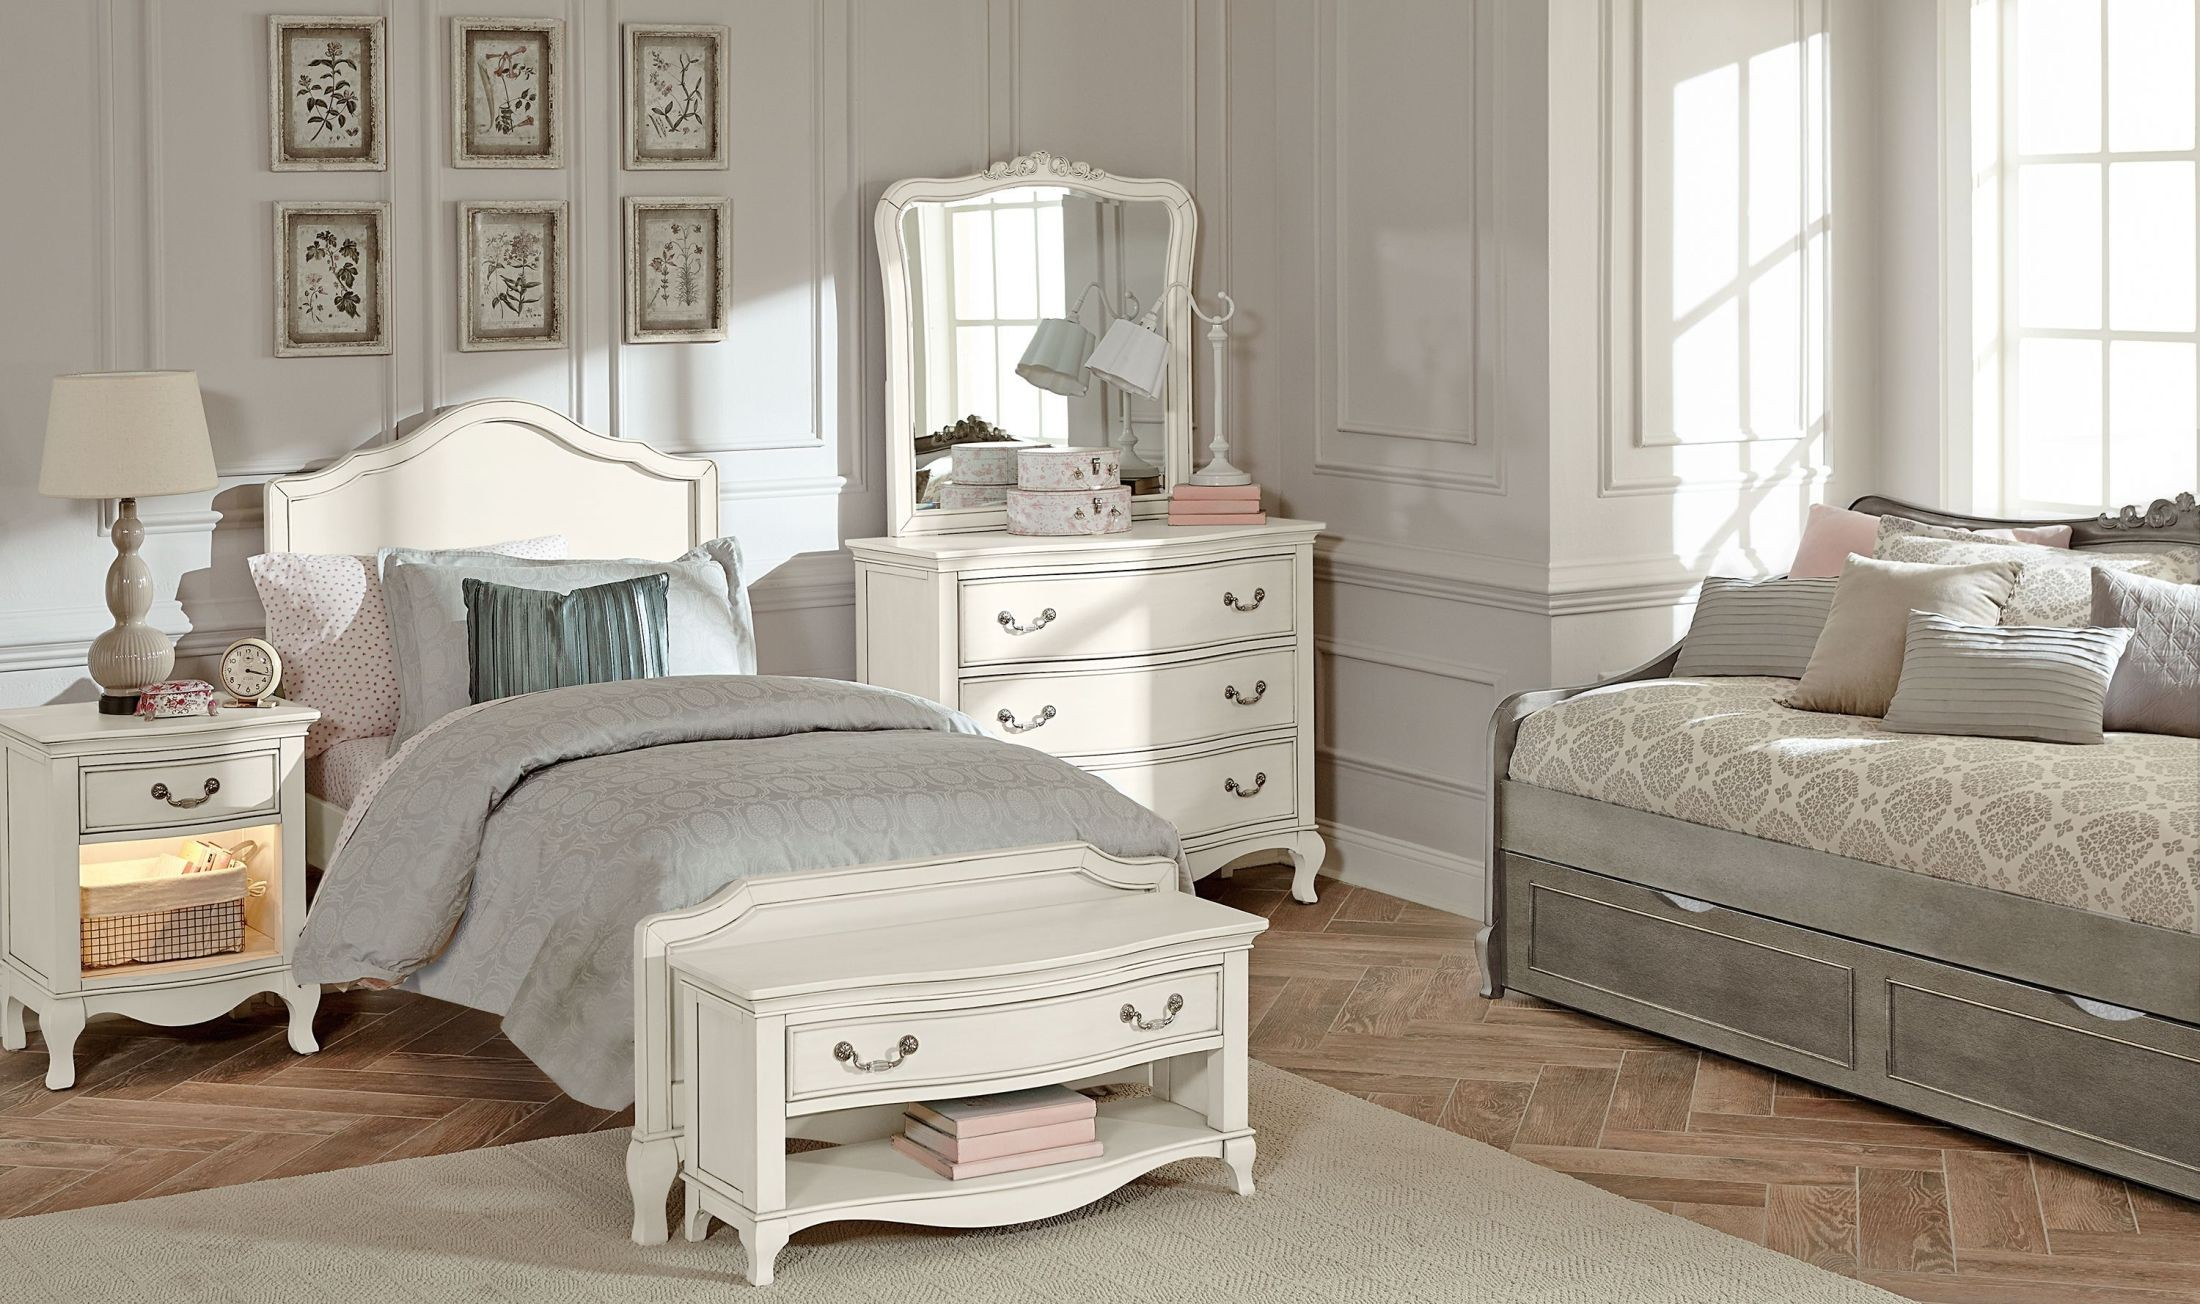 Kensington antique white charlotte youth panel bedroom set - White vintage bedroom furniture sets ...